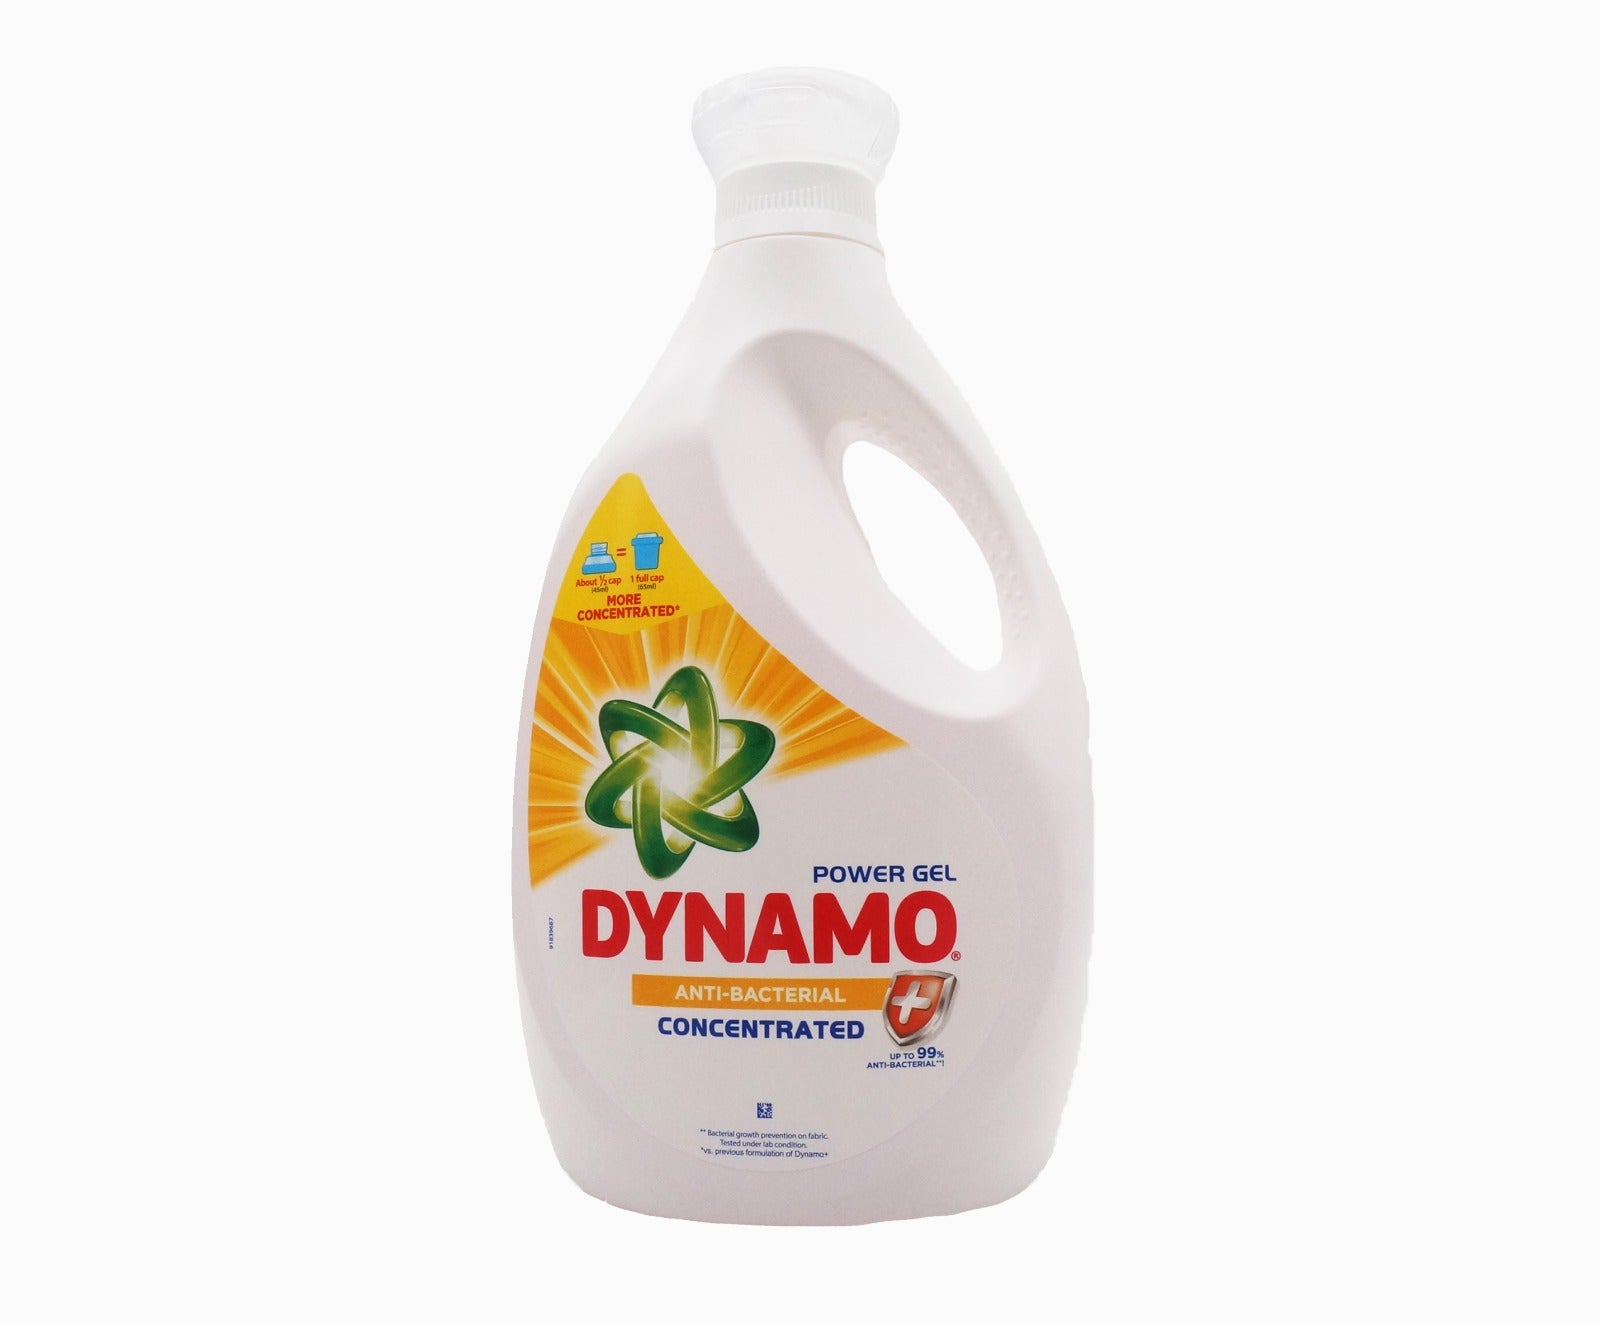 Dynamo Power Gel Detergent - Anti Bacterial (2.7Kg – Piece)